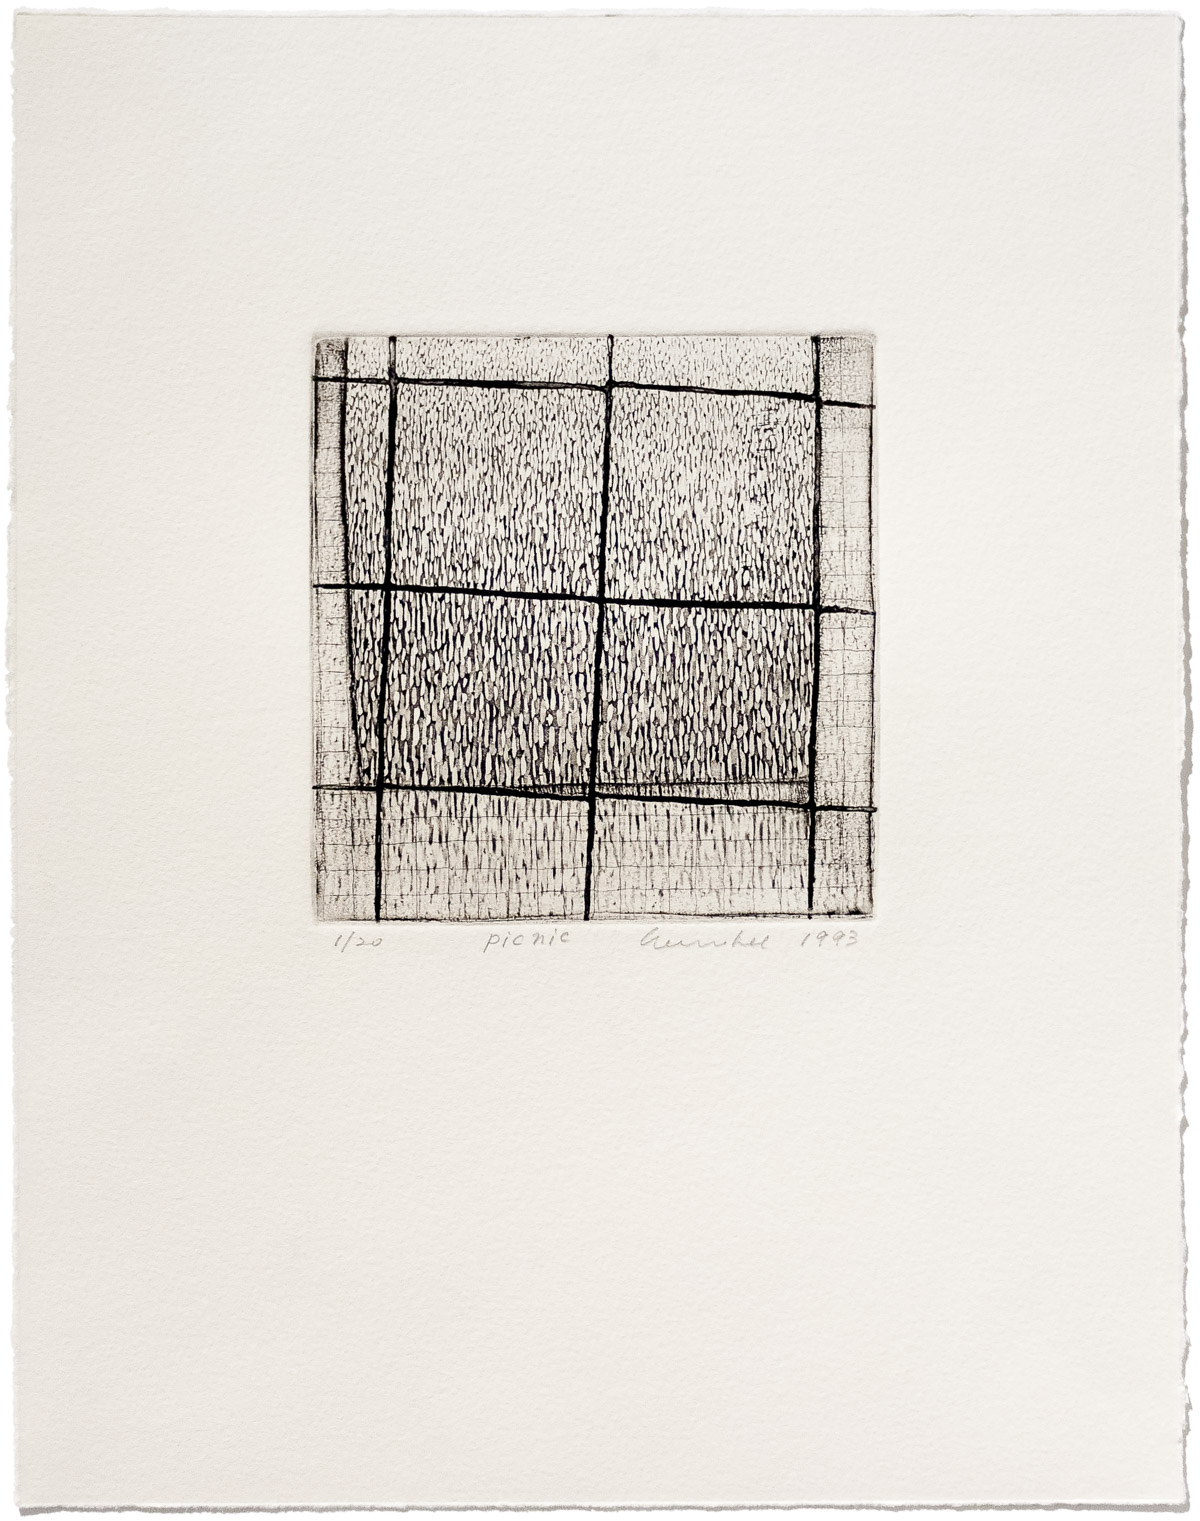 Soo Im Lee, Picnic, 1993, limited-edition etching on paper